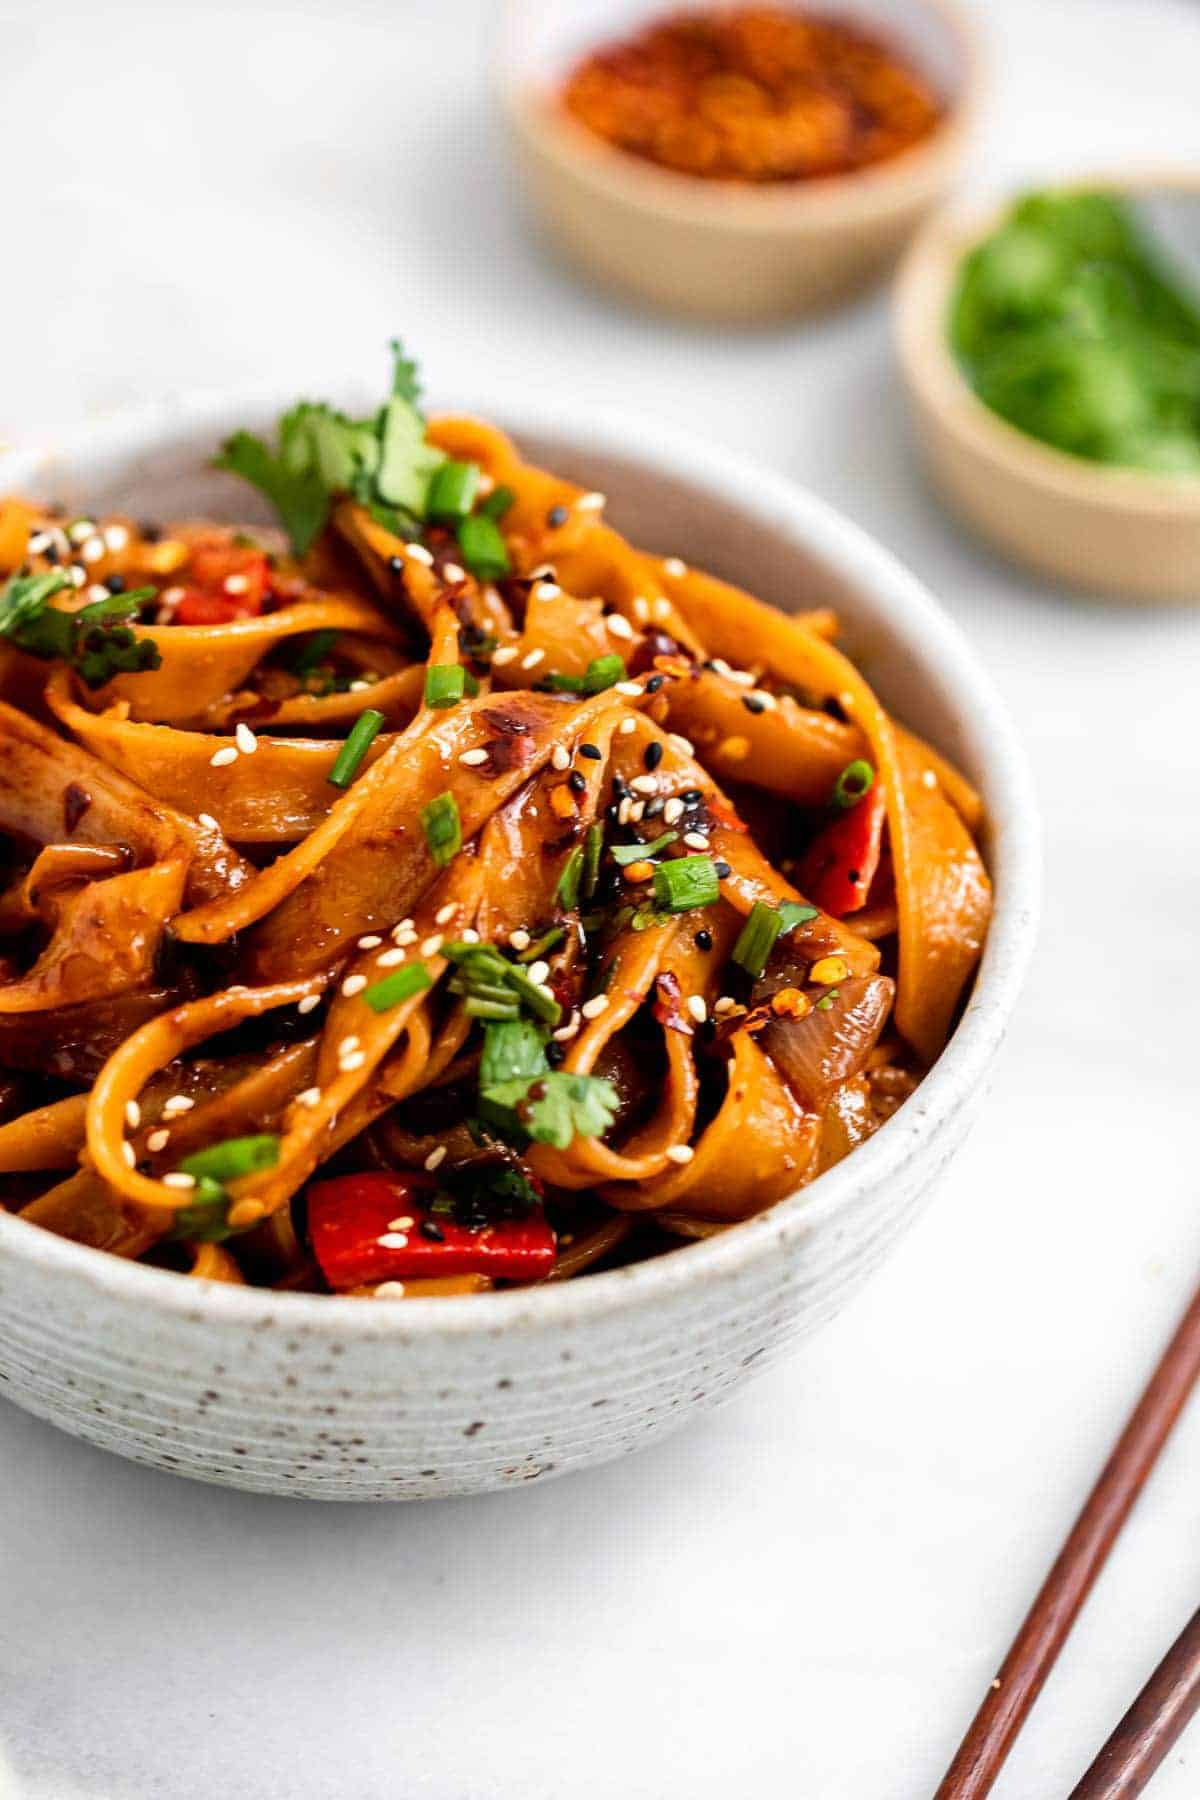 Spicy Chili Garlic Noodles 15 Minute Recipe Eat With Clarity